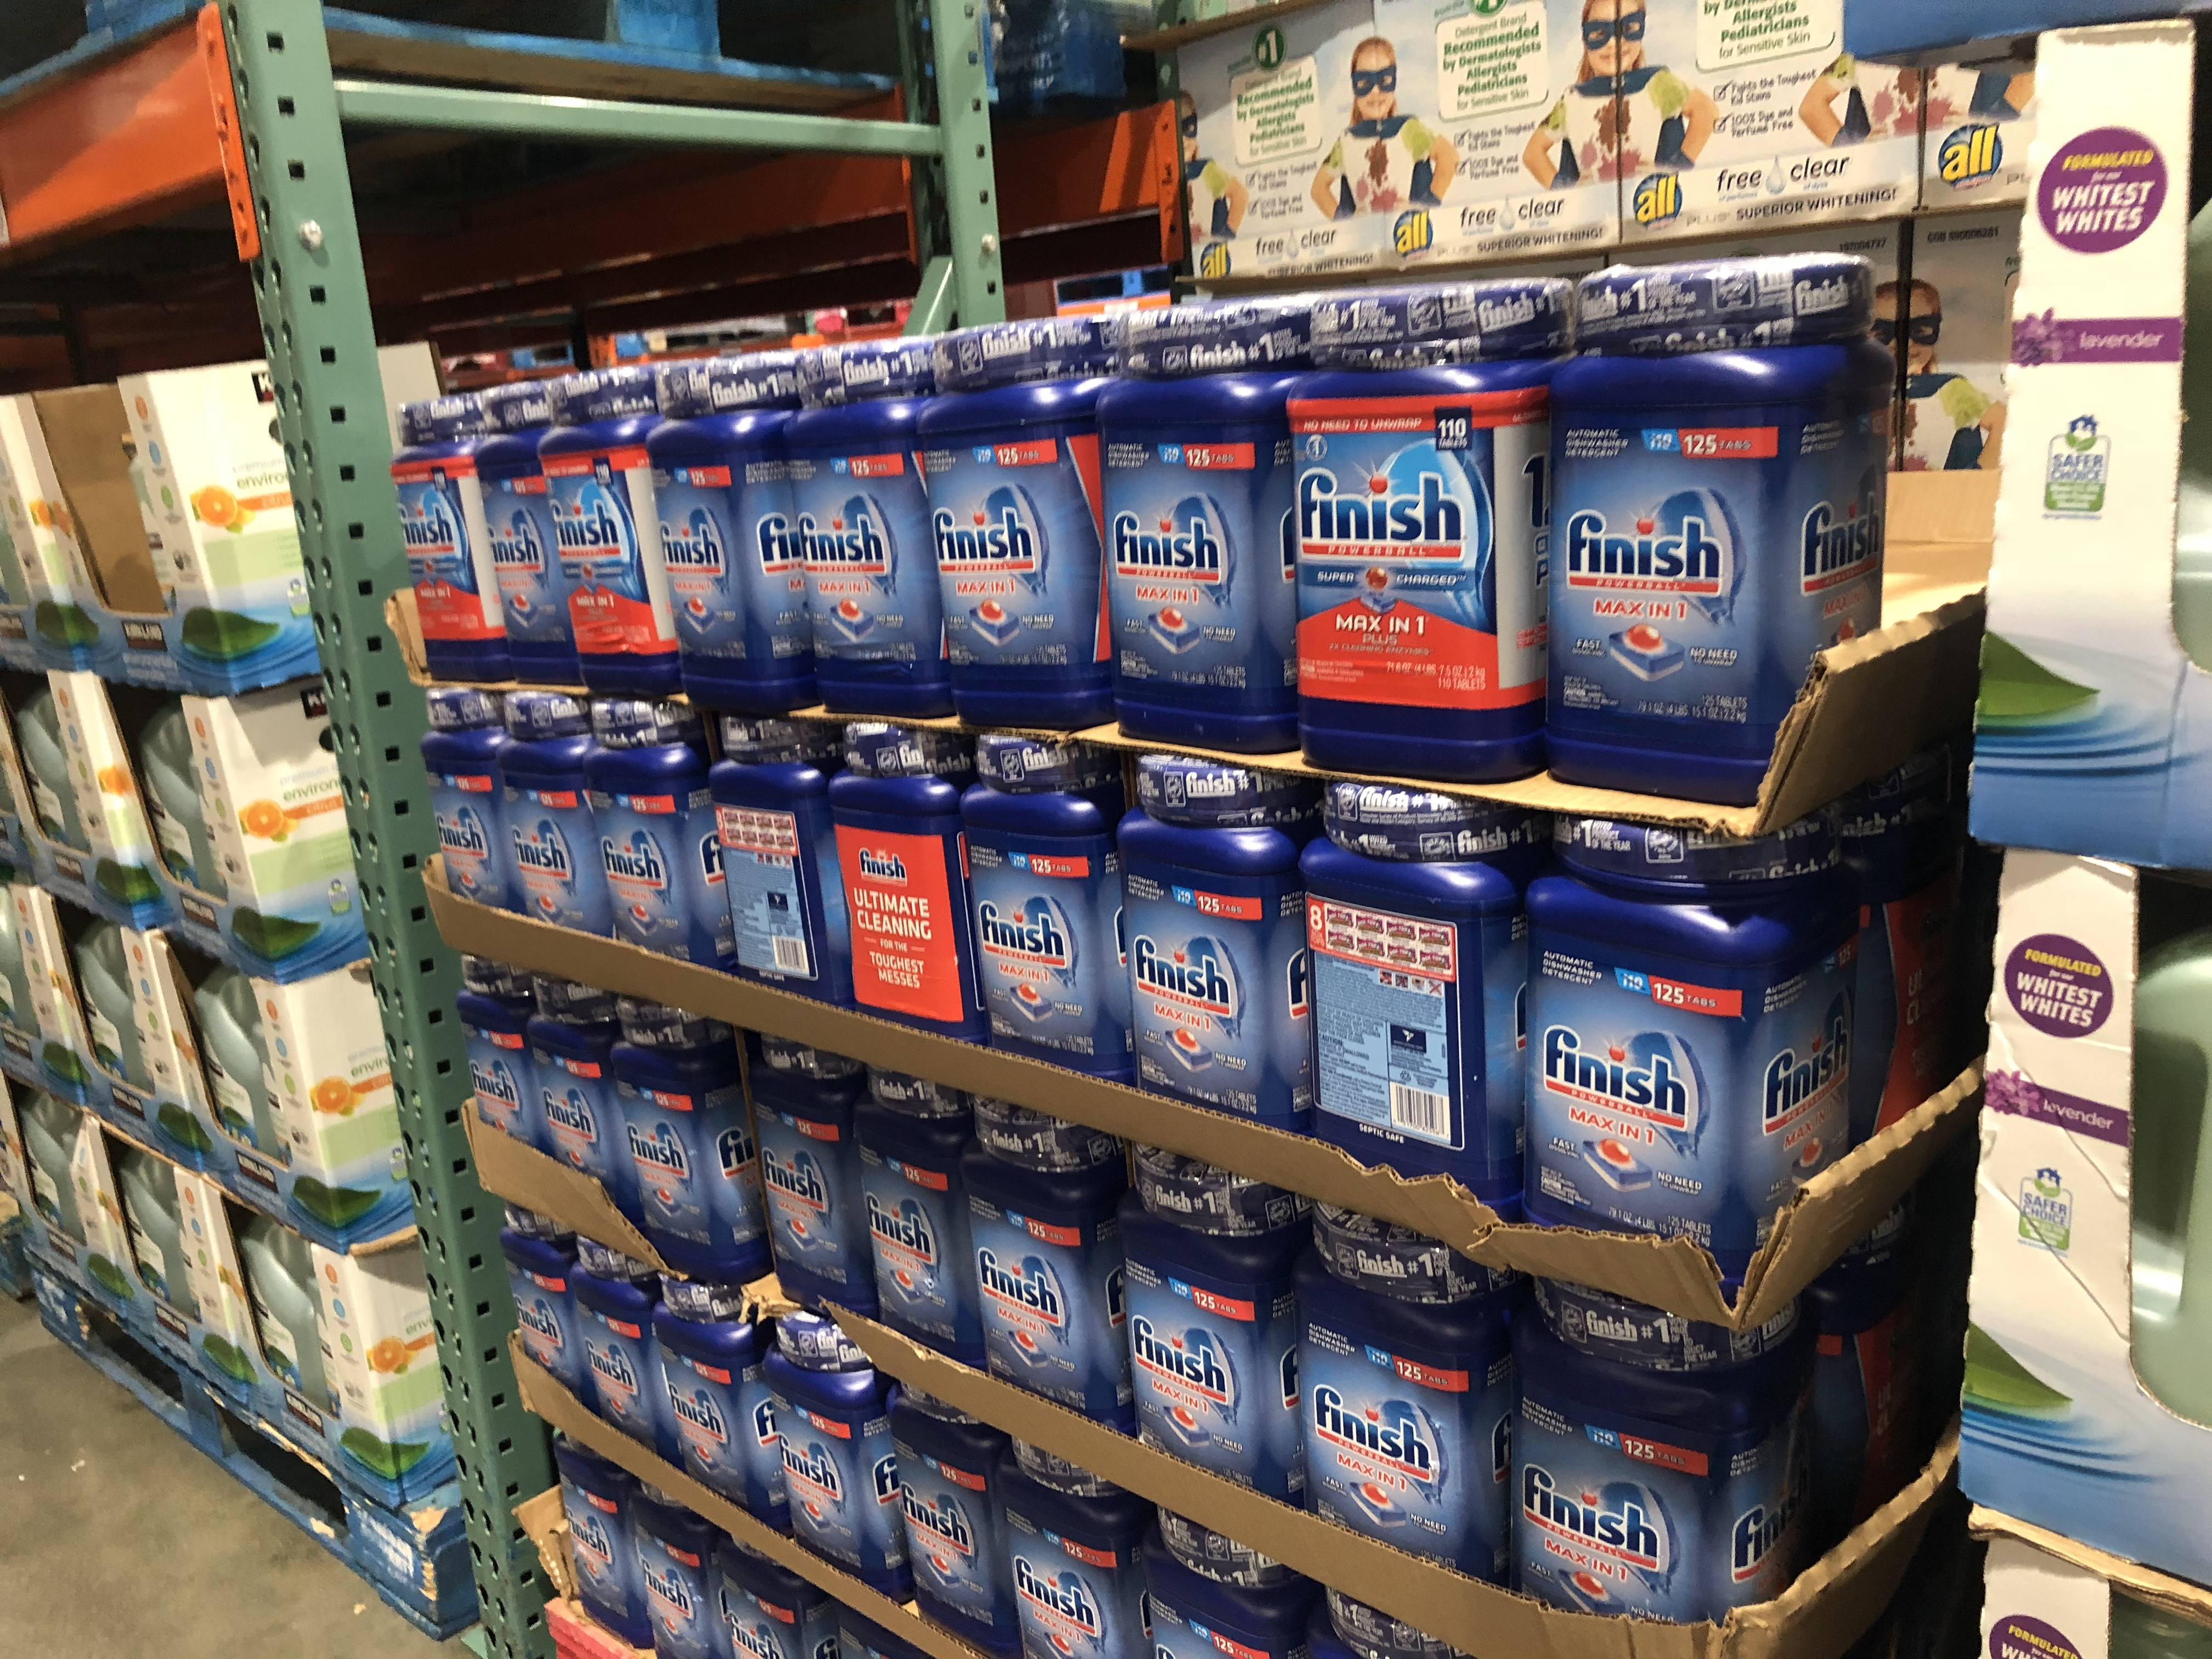 Costco deals October 2018 – Finish diswasher tabs at Costco